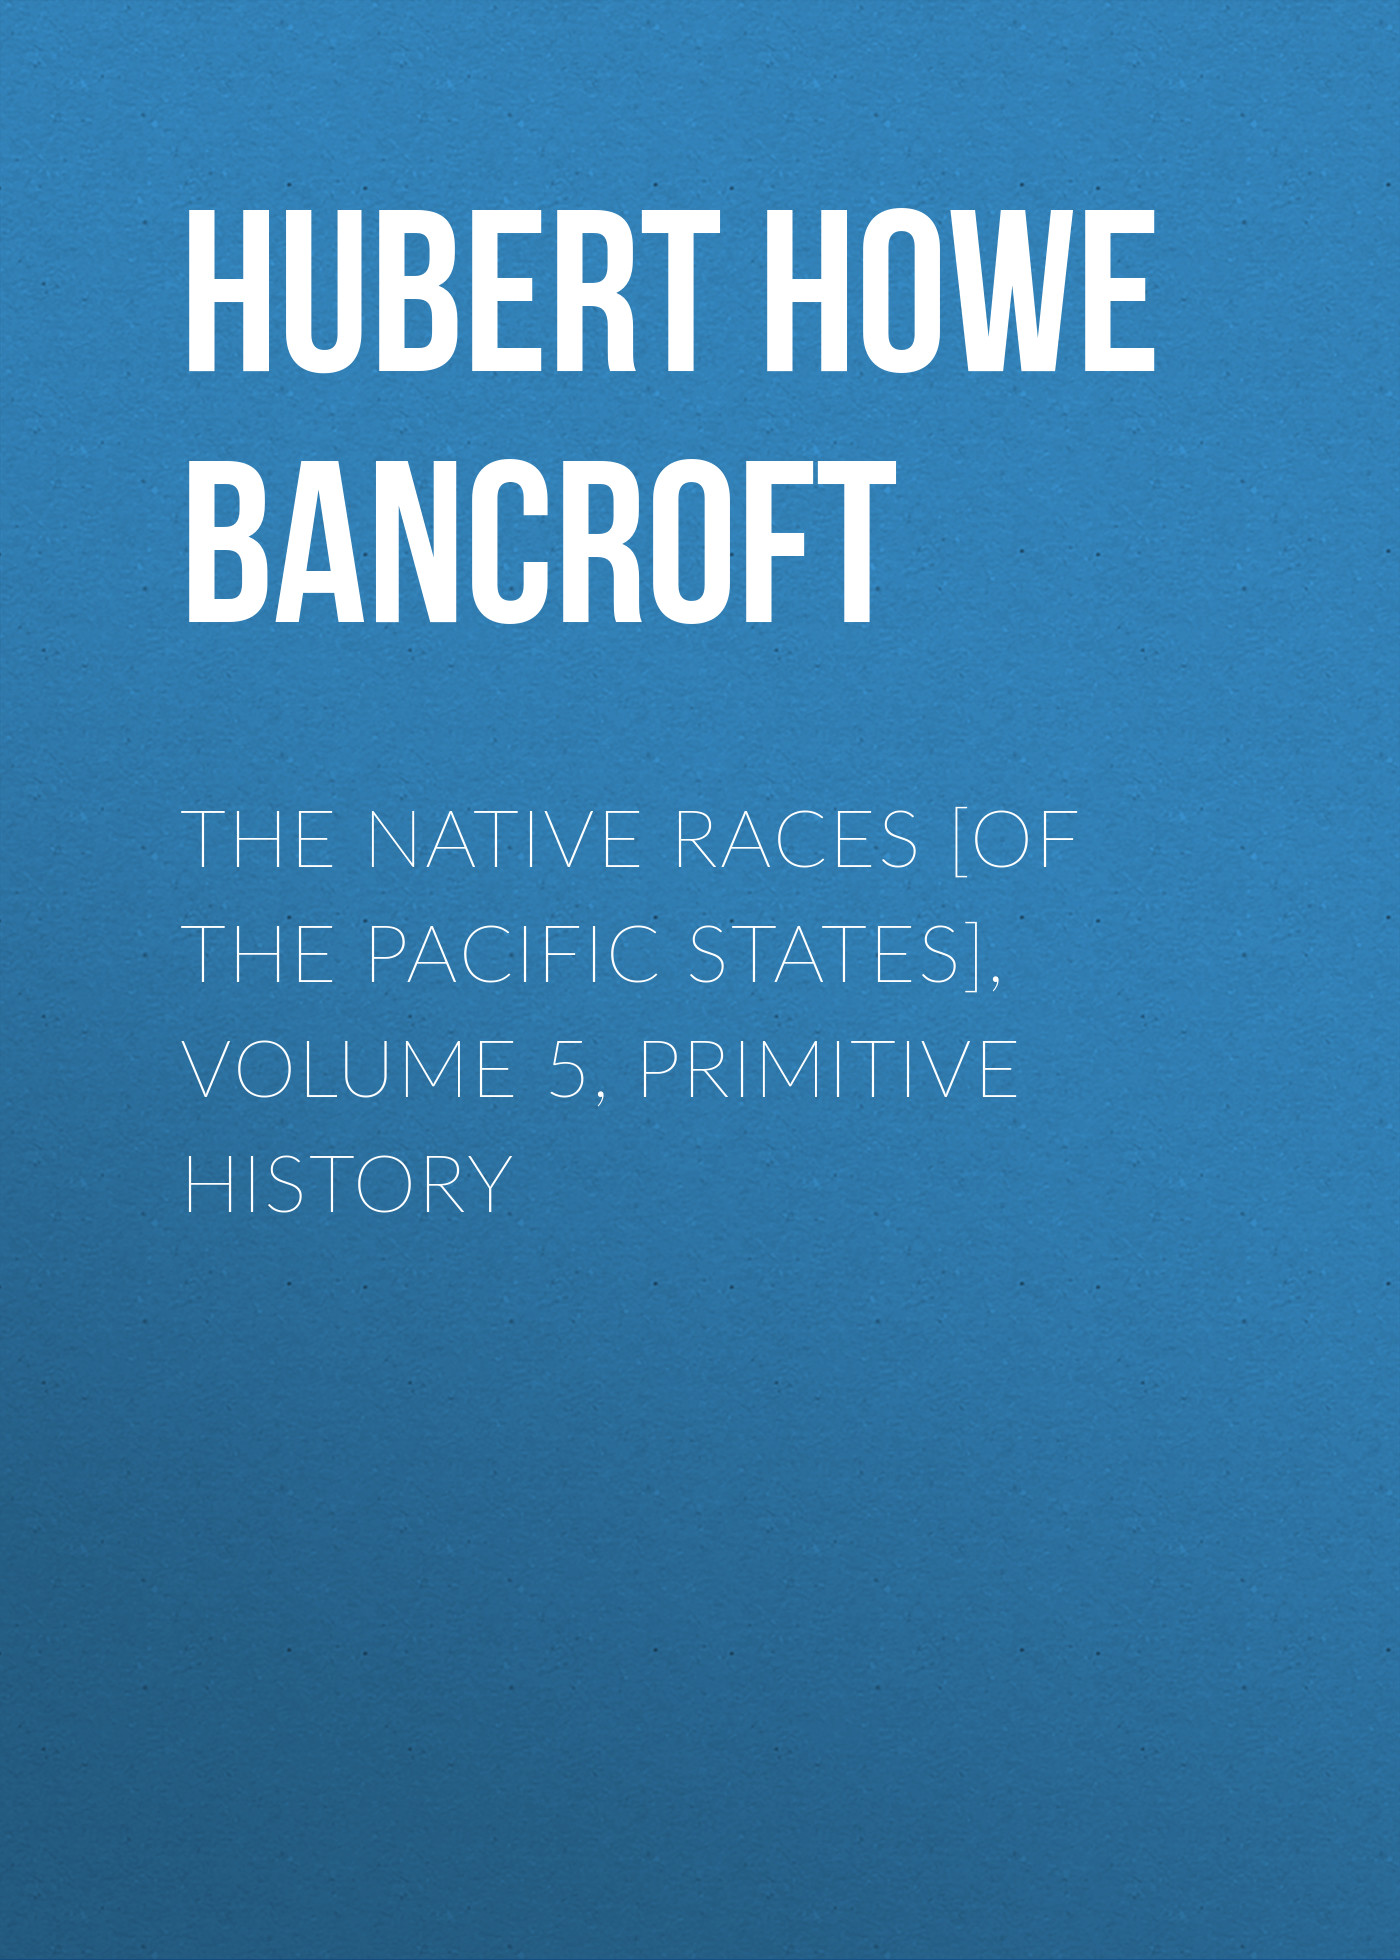 Hubert Howe Bancroft The Native Races [of the Pacific states], Volume 5, Primitive History fables volume 5 the mean seasons